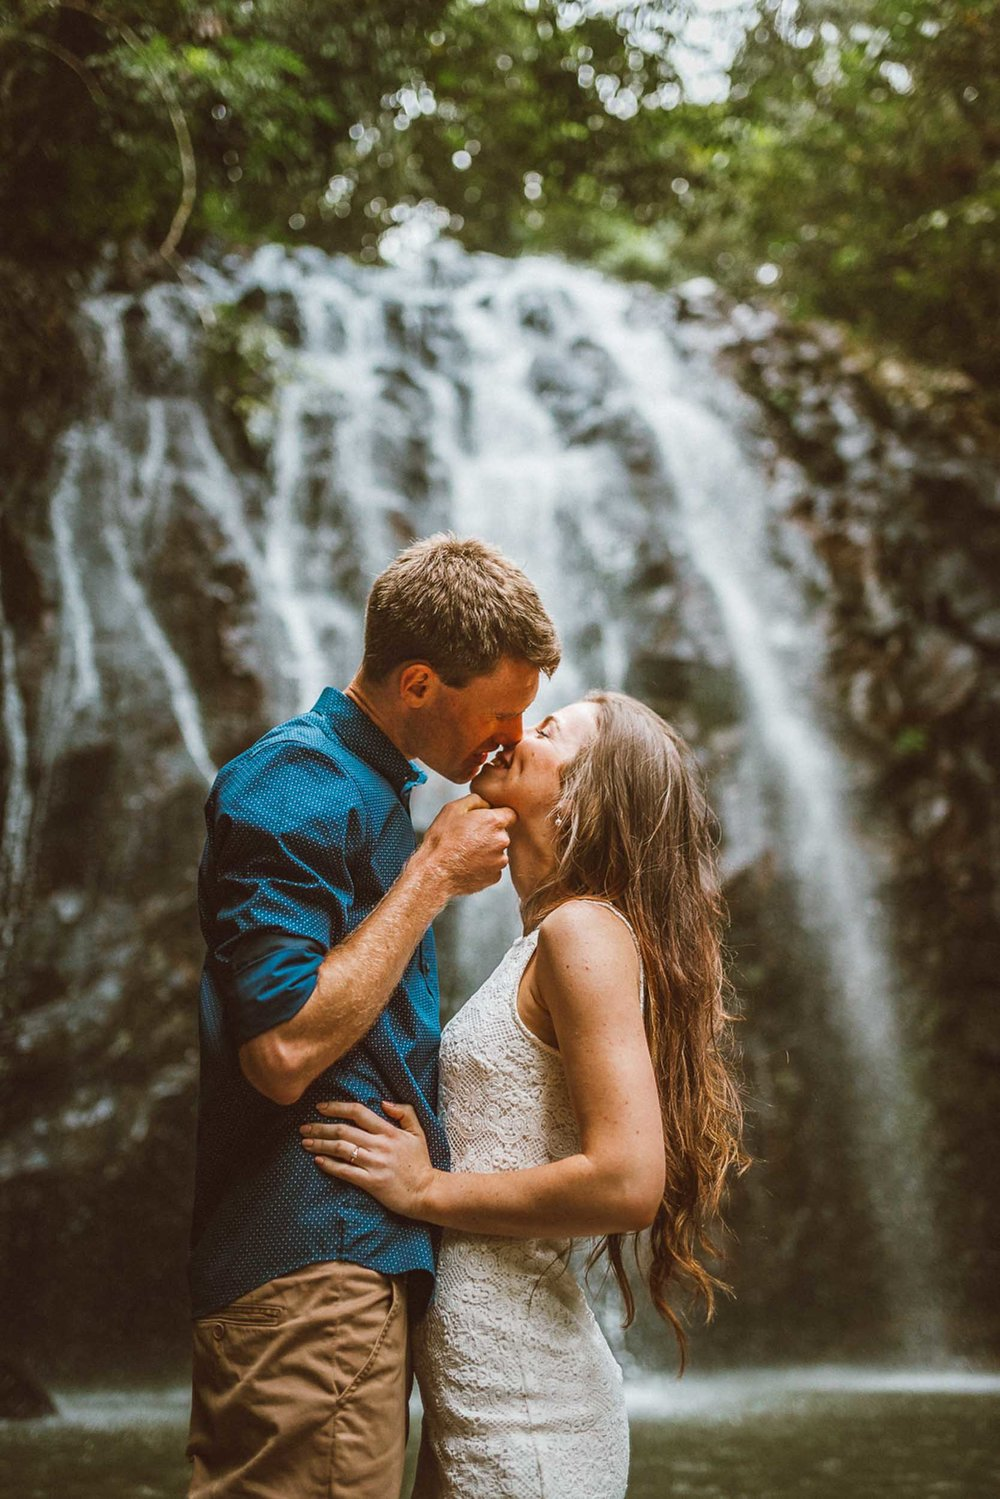 The Raw Photographer - Wedding Photographer - Tablelands Mareeba Atherton Engagement- Couple Session Photos in Cairns - Engaged Price - Rainforest Waterfall Queensland - photoshoot-22.jpg